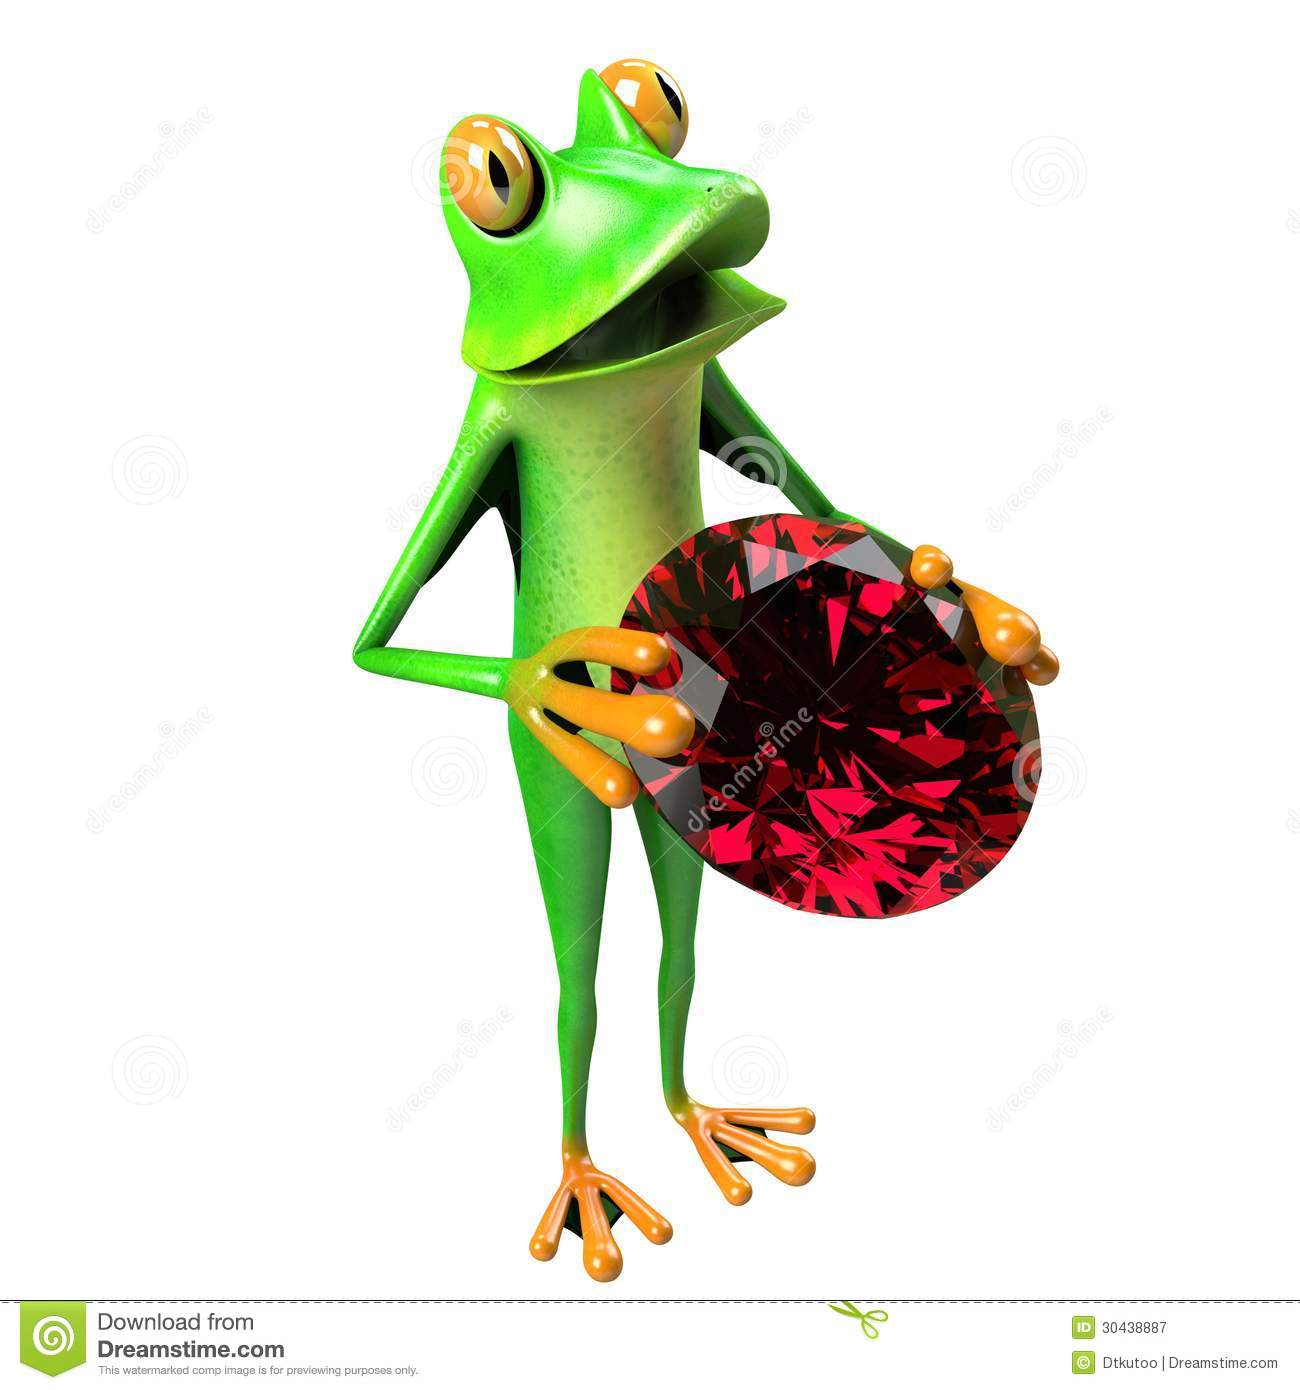 Super frog clipart graphic free Funny Super Frog Royalty Free Stock Photography - Image: 30438887 graphic free